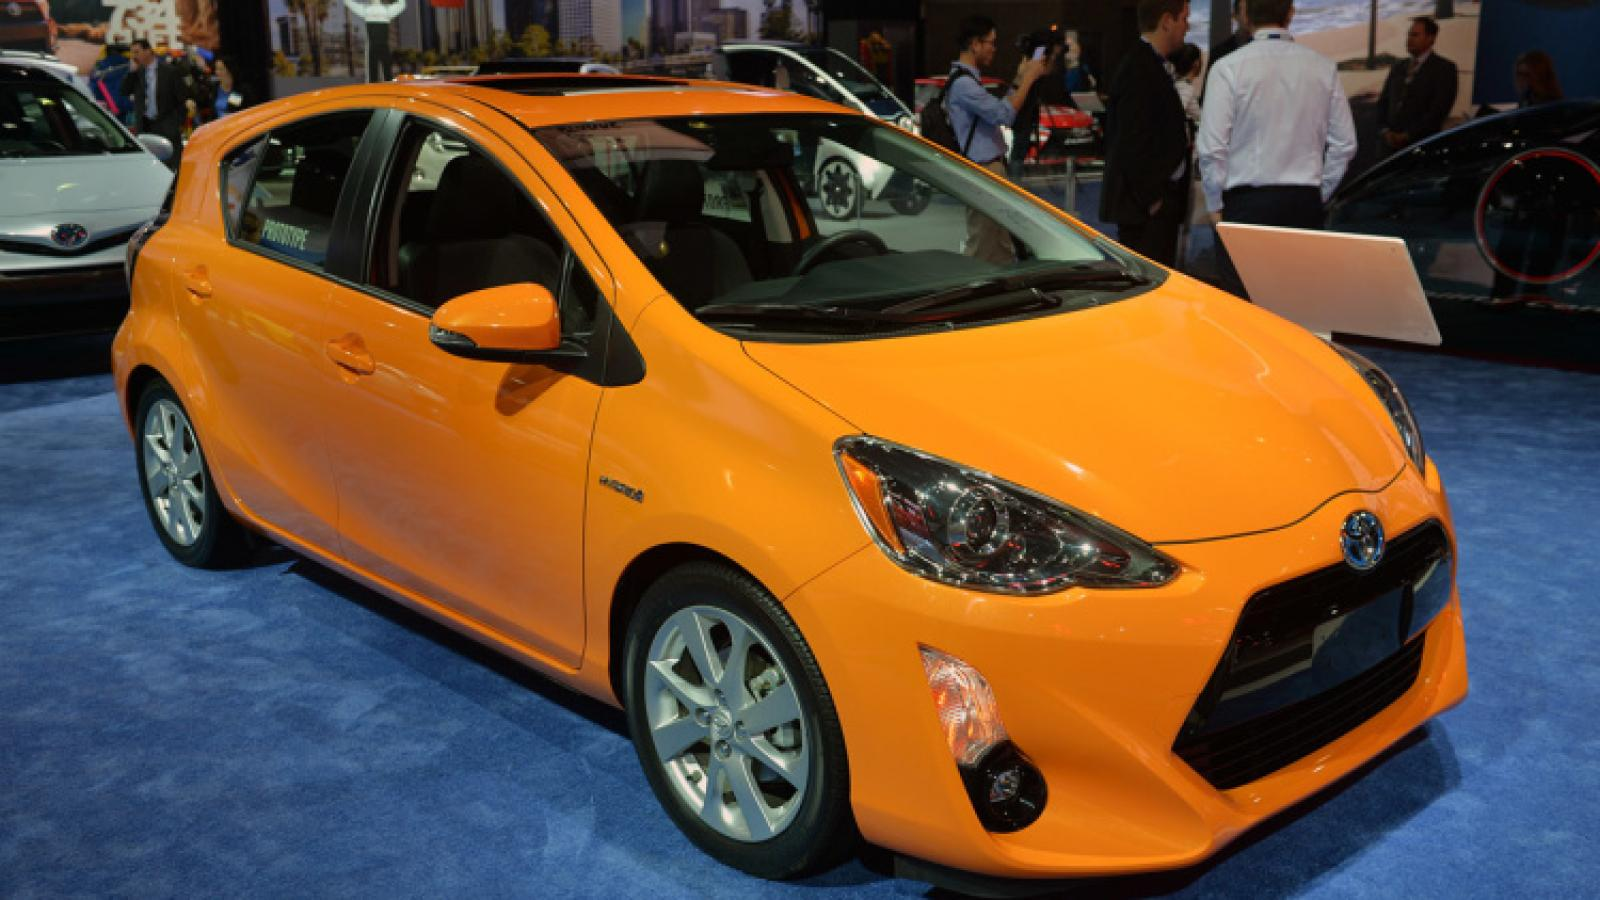 2015 toyota prius c information and photos zombiedrive. Black Bedroom Furniture Sets. Home Design Ideas